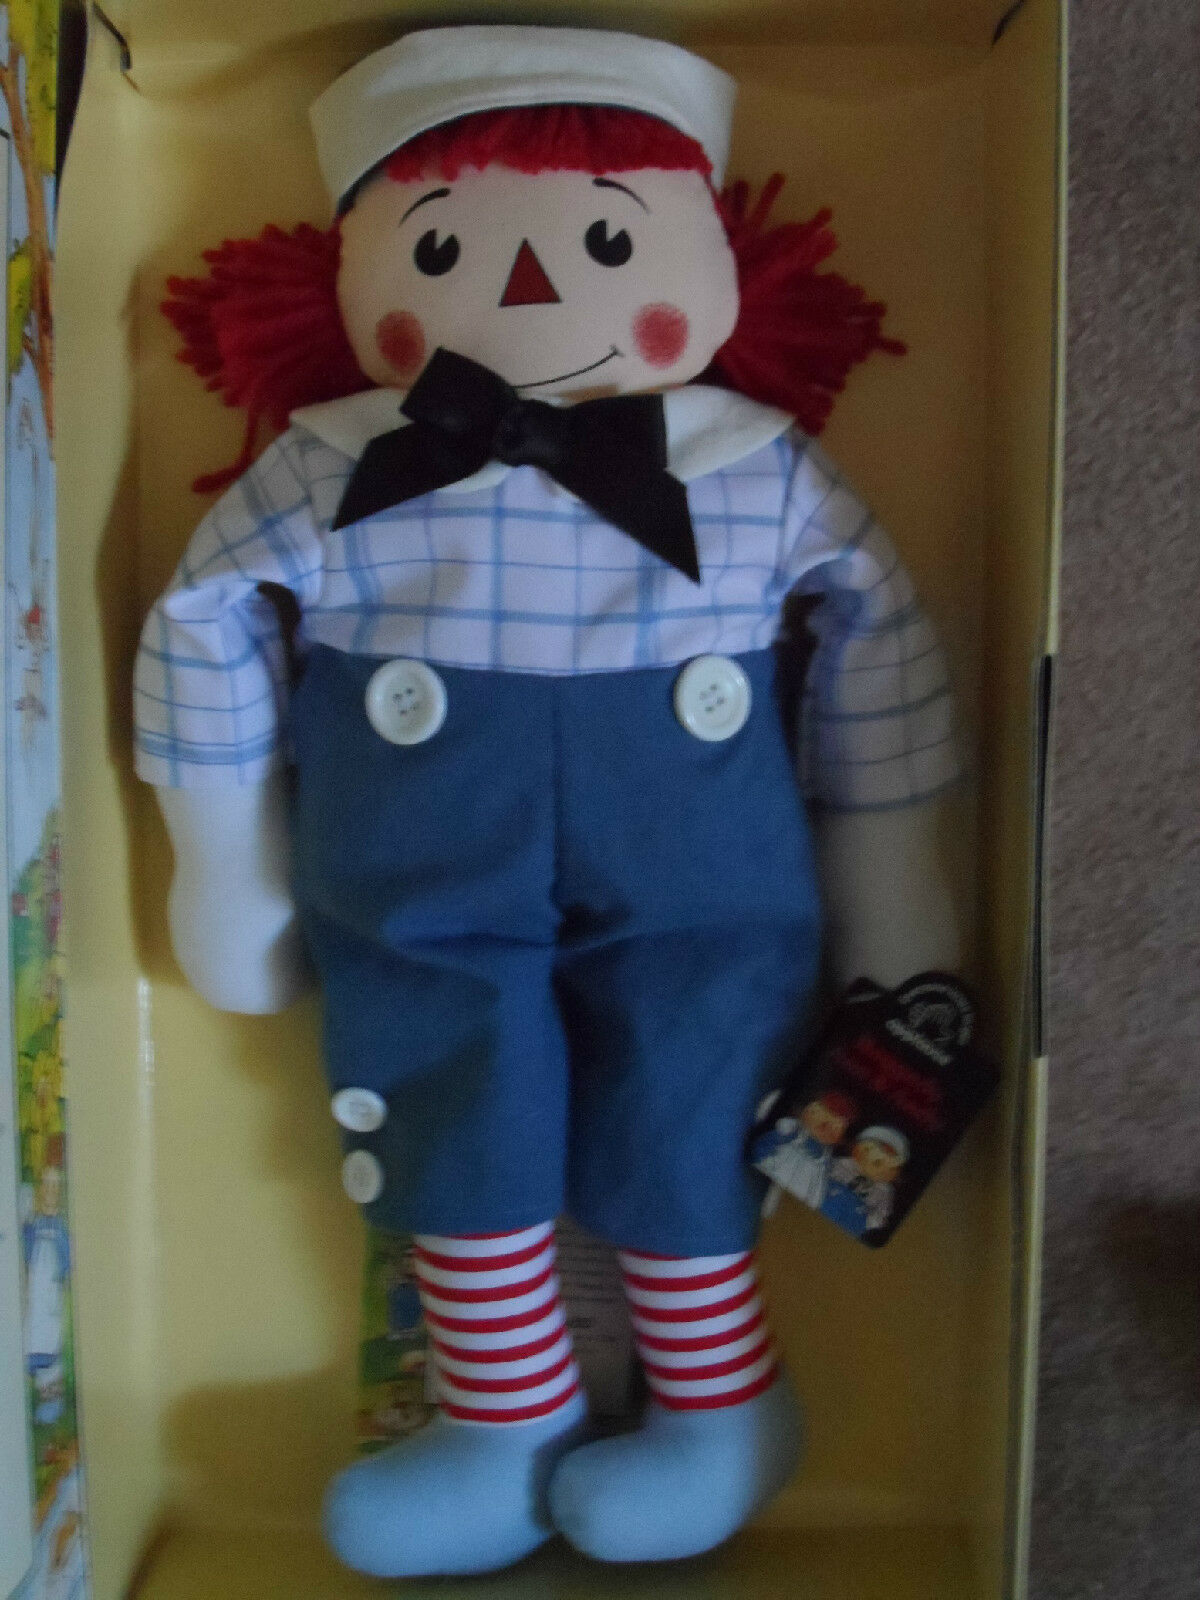 MIB Raggedy Andy Storybook Doll 1997, 16  Limited Edition - 3285 7500 Applause